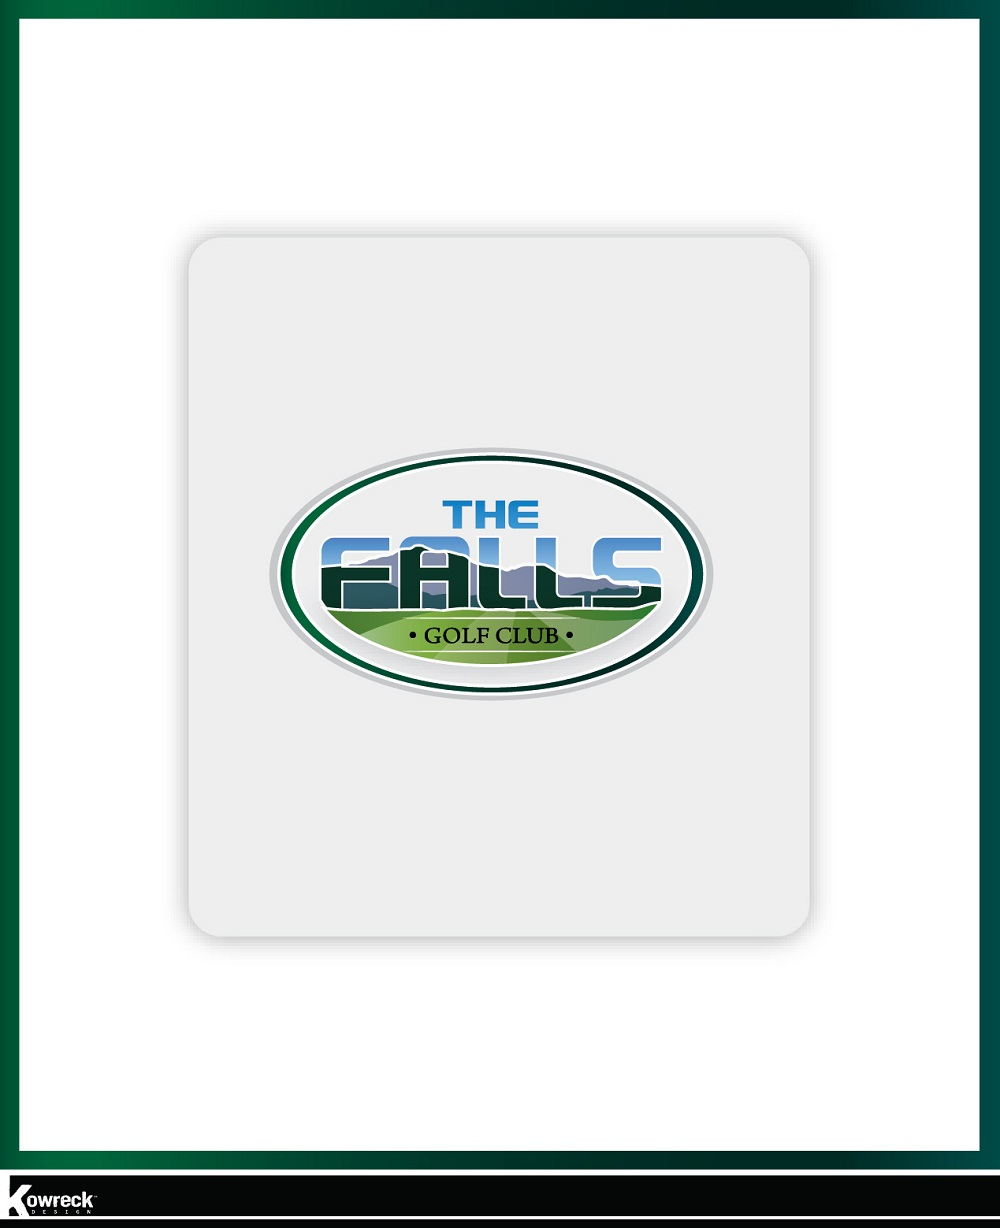 Logo Design by kowreck - Entry No. 23 in the Logo Design Contest The Falls Golf Club Logo Design.